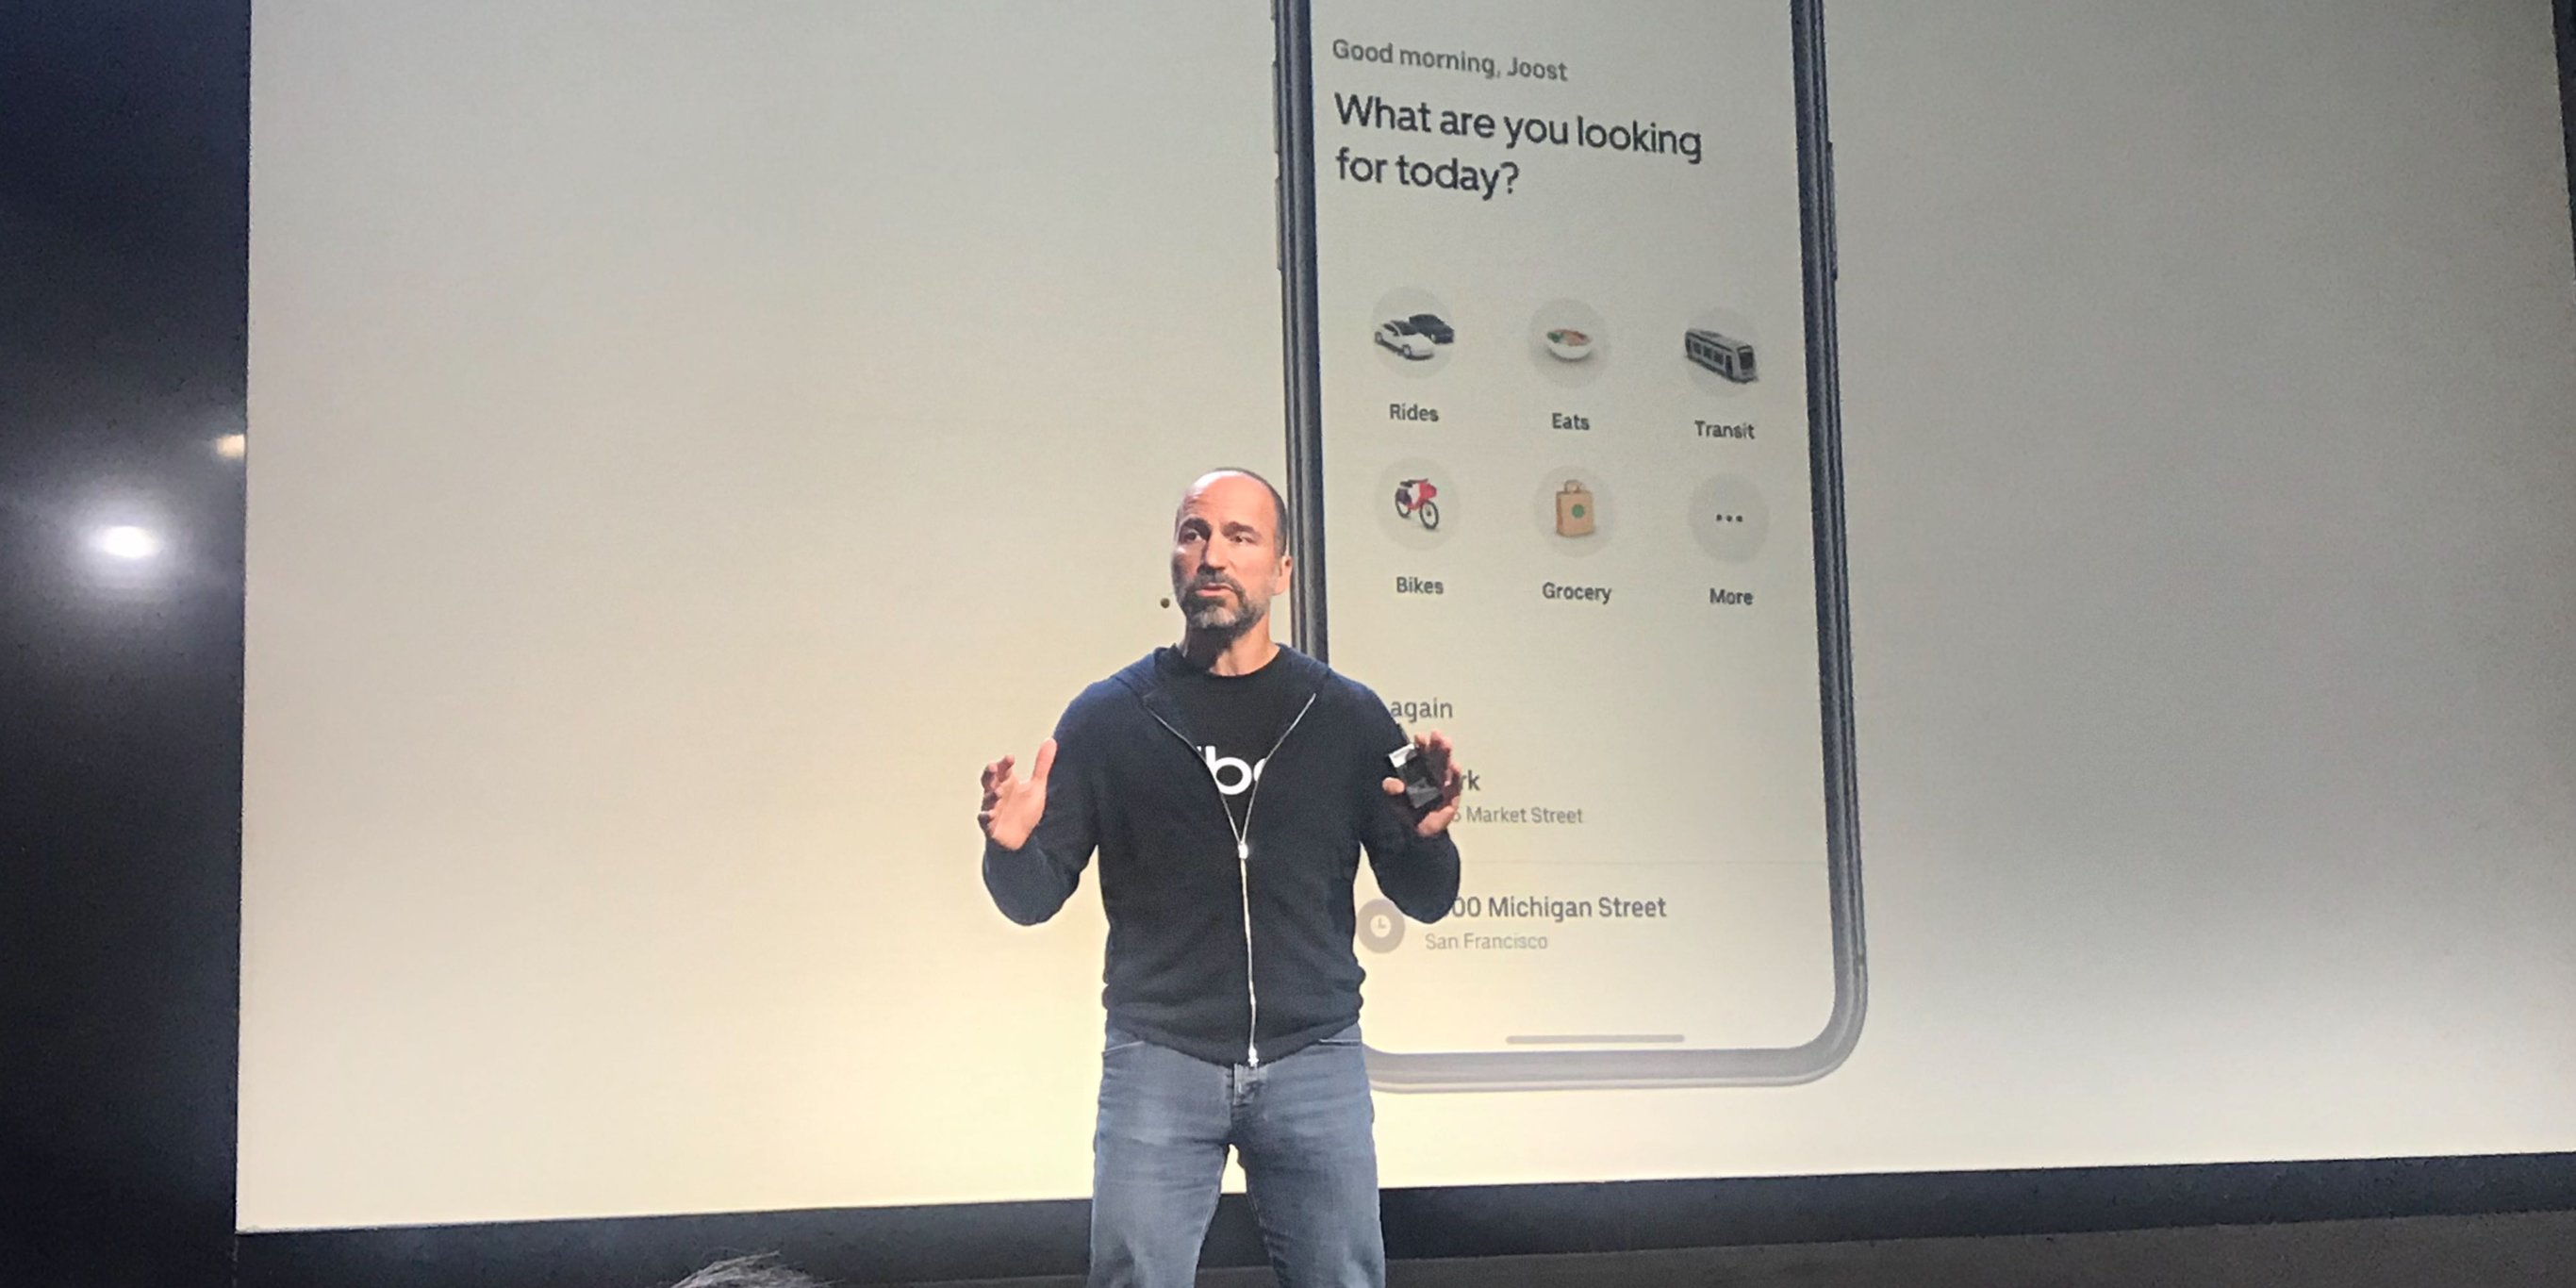 A major update is coming to Uber's app, and the company's CEO says it wants to be 'the operating system of your life' (UBER)